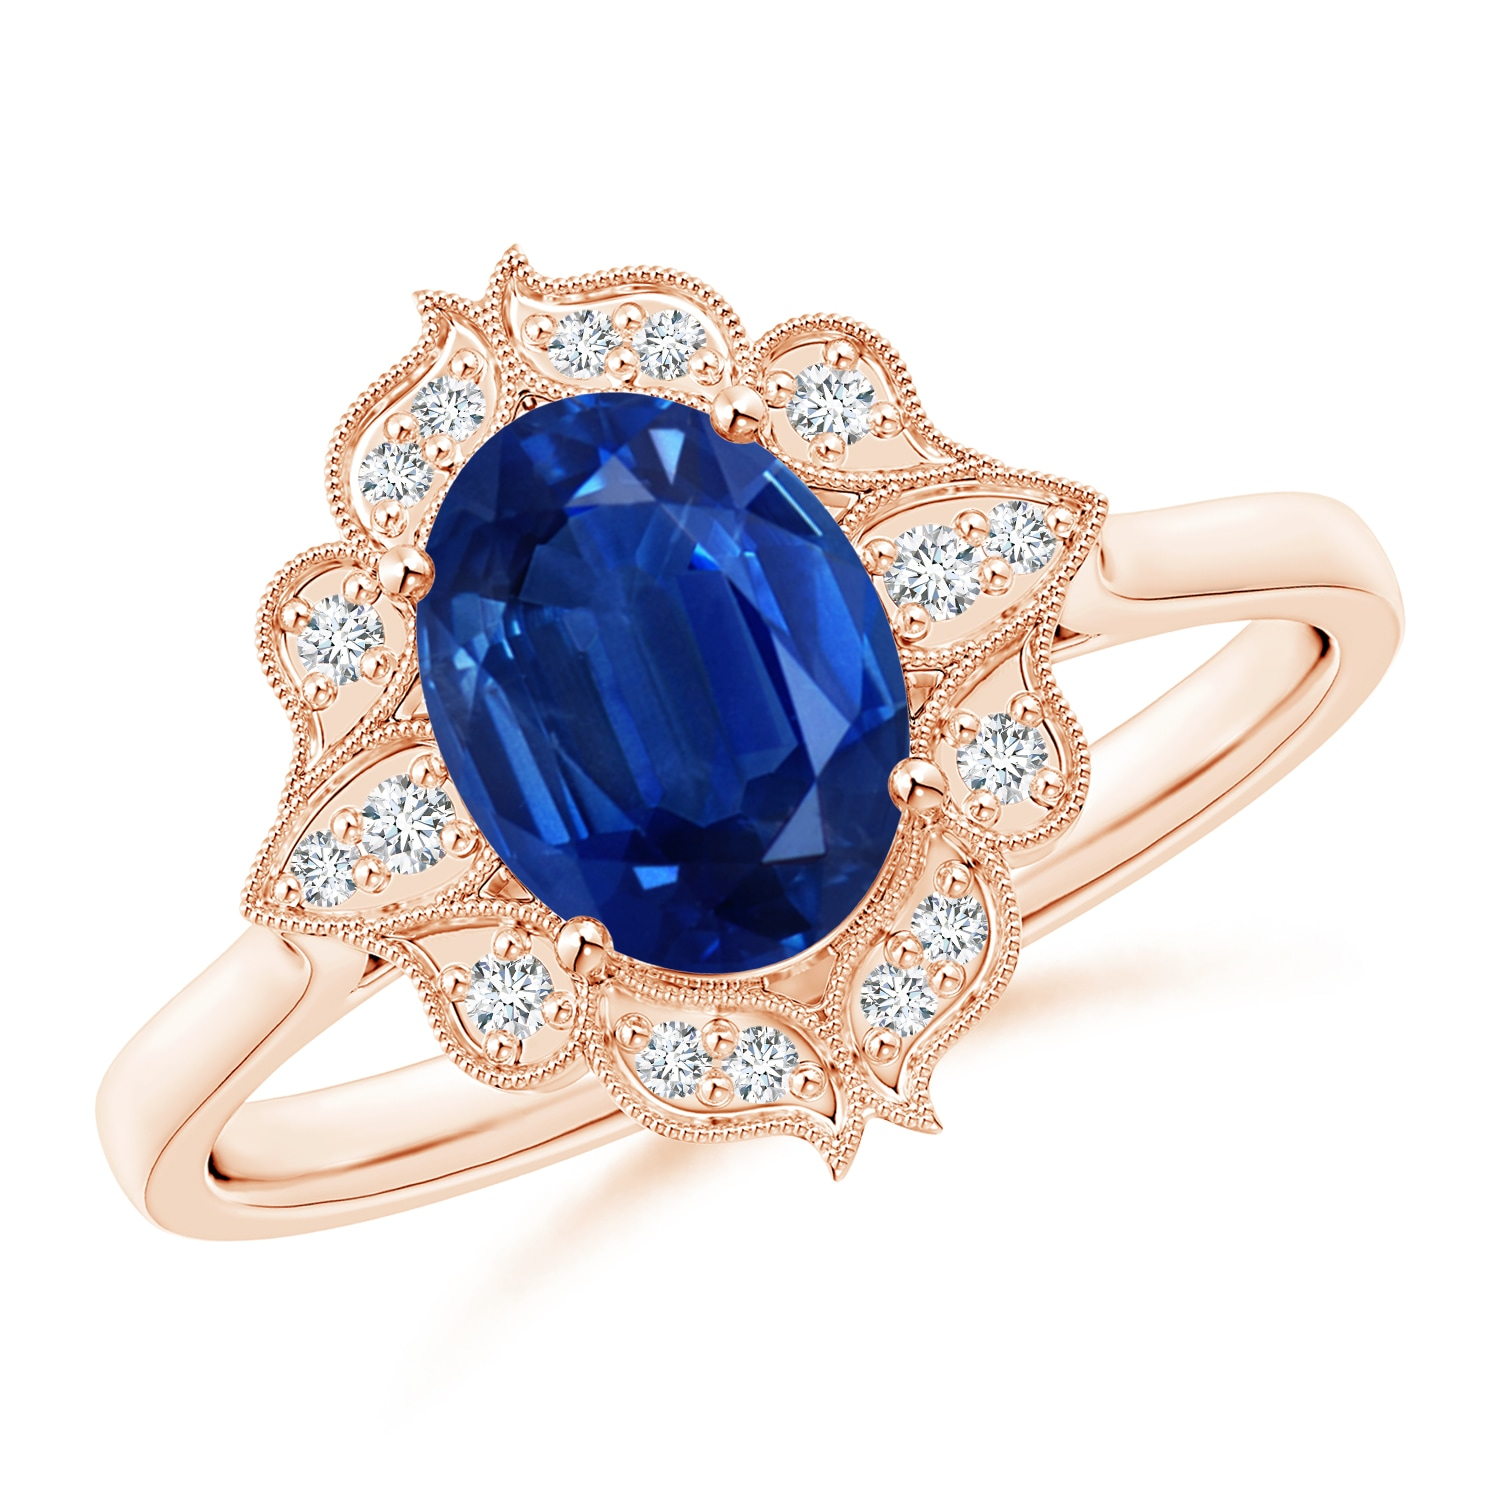 Flower Halo Wedding: Vintage Style Oval Sapphire Engagement Ring With Floral